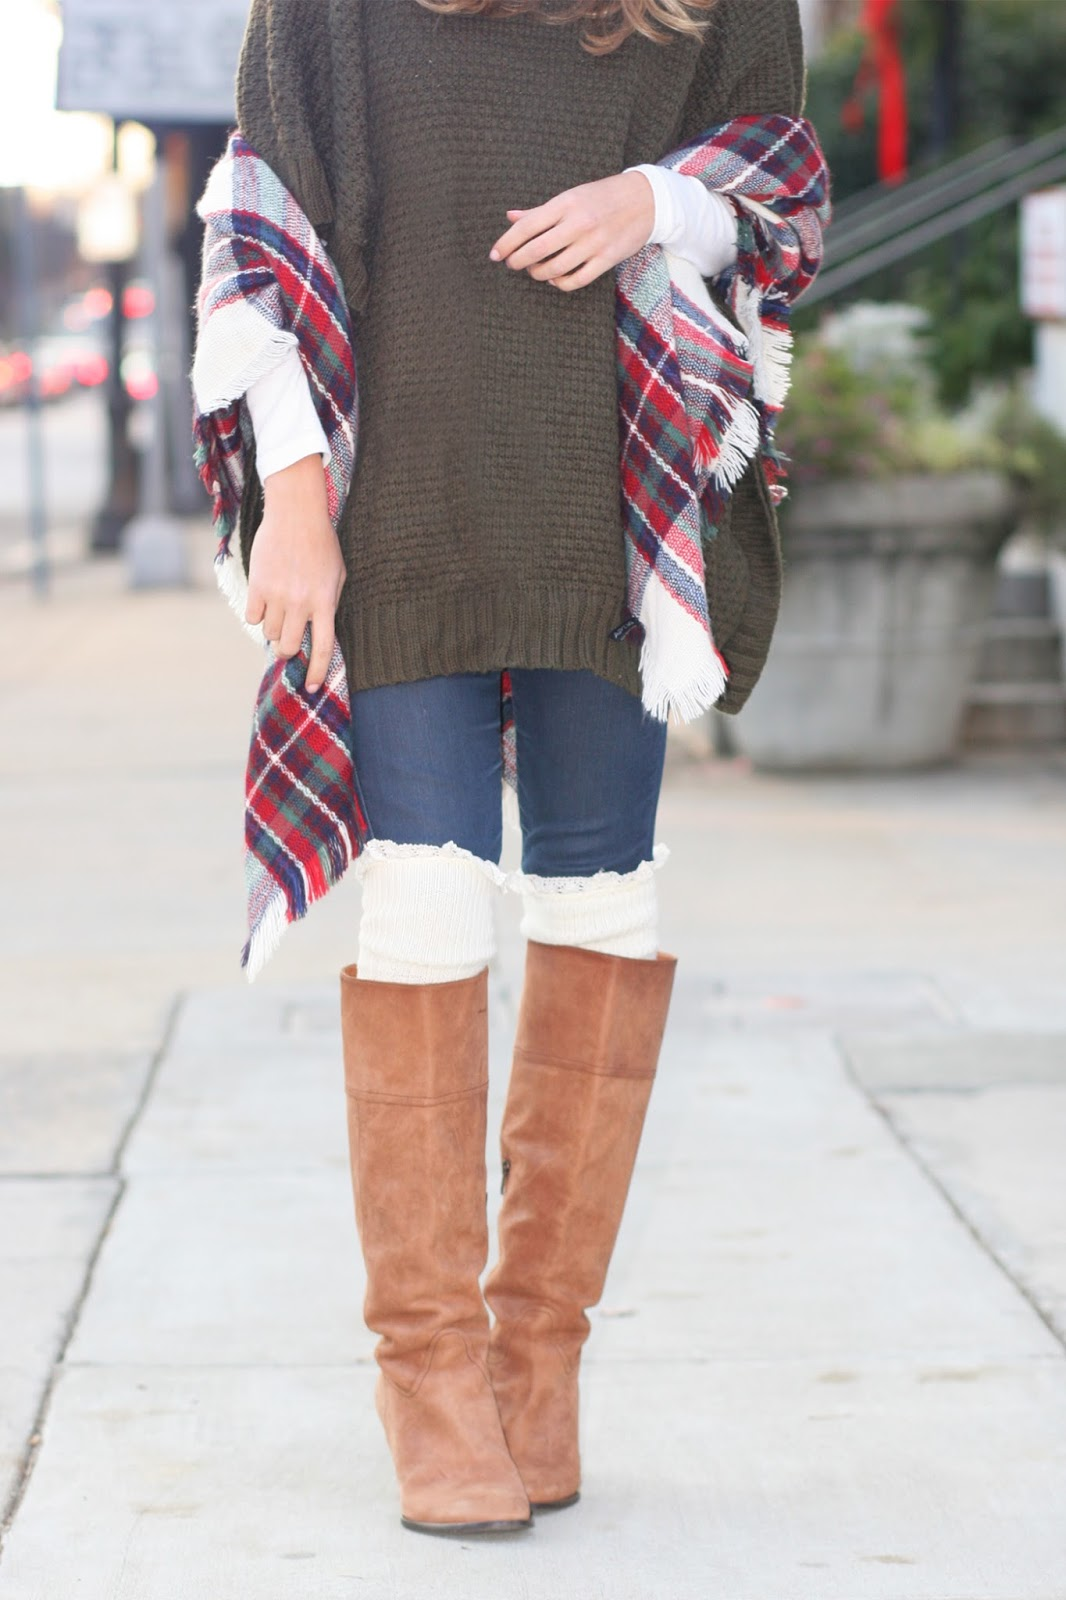 over-the-knee-leather-jcrew-boots-and-lace-boot-socks